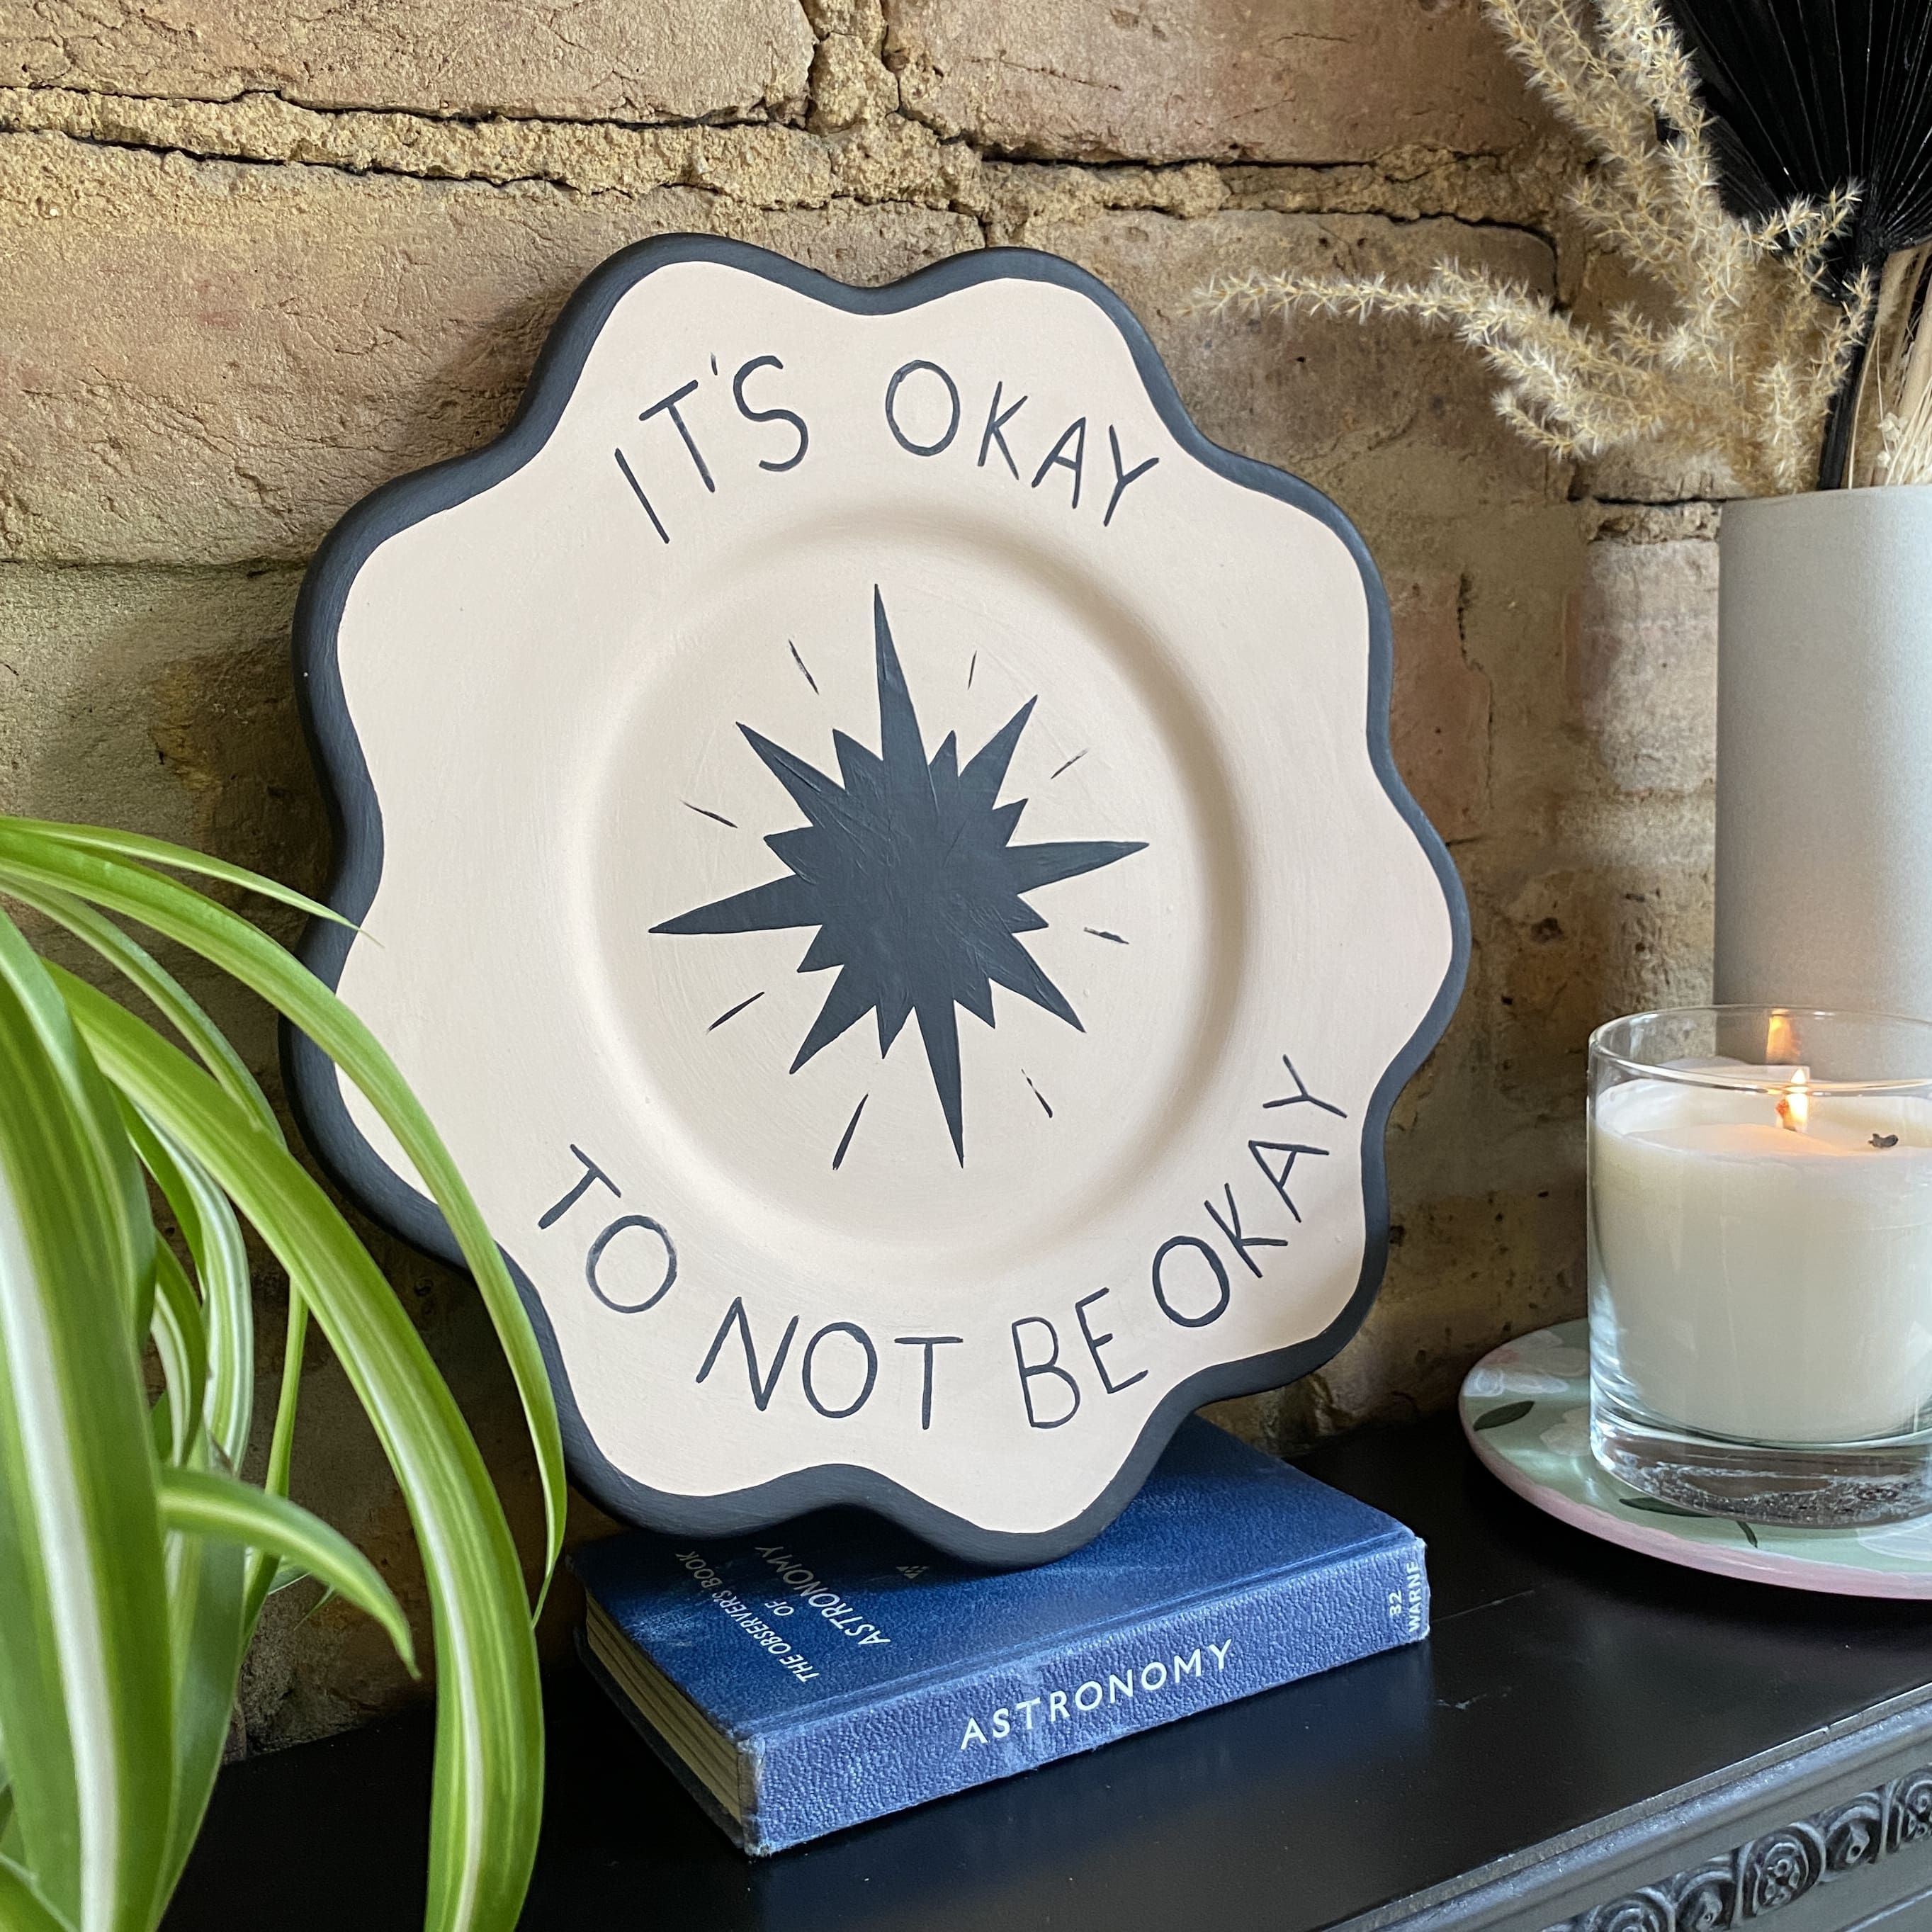 It's okay to not be okay- Hand-painted decorative scalloped plate